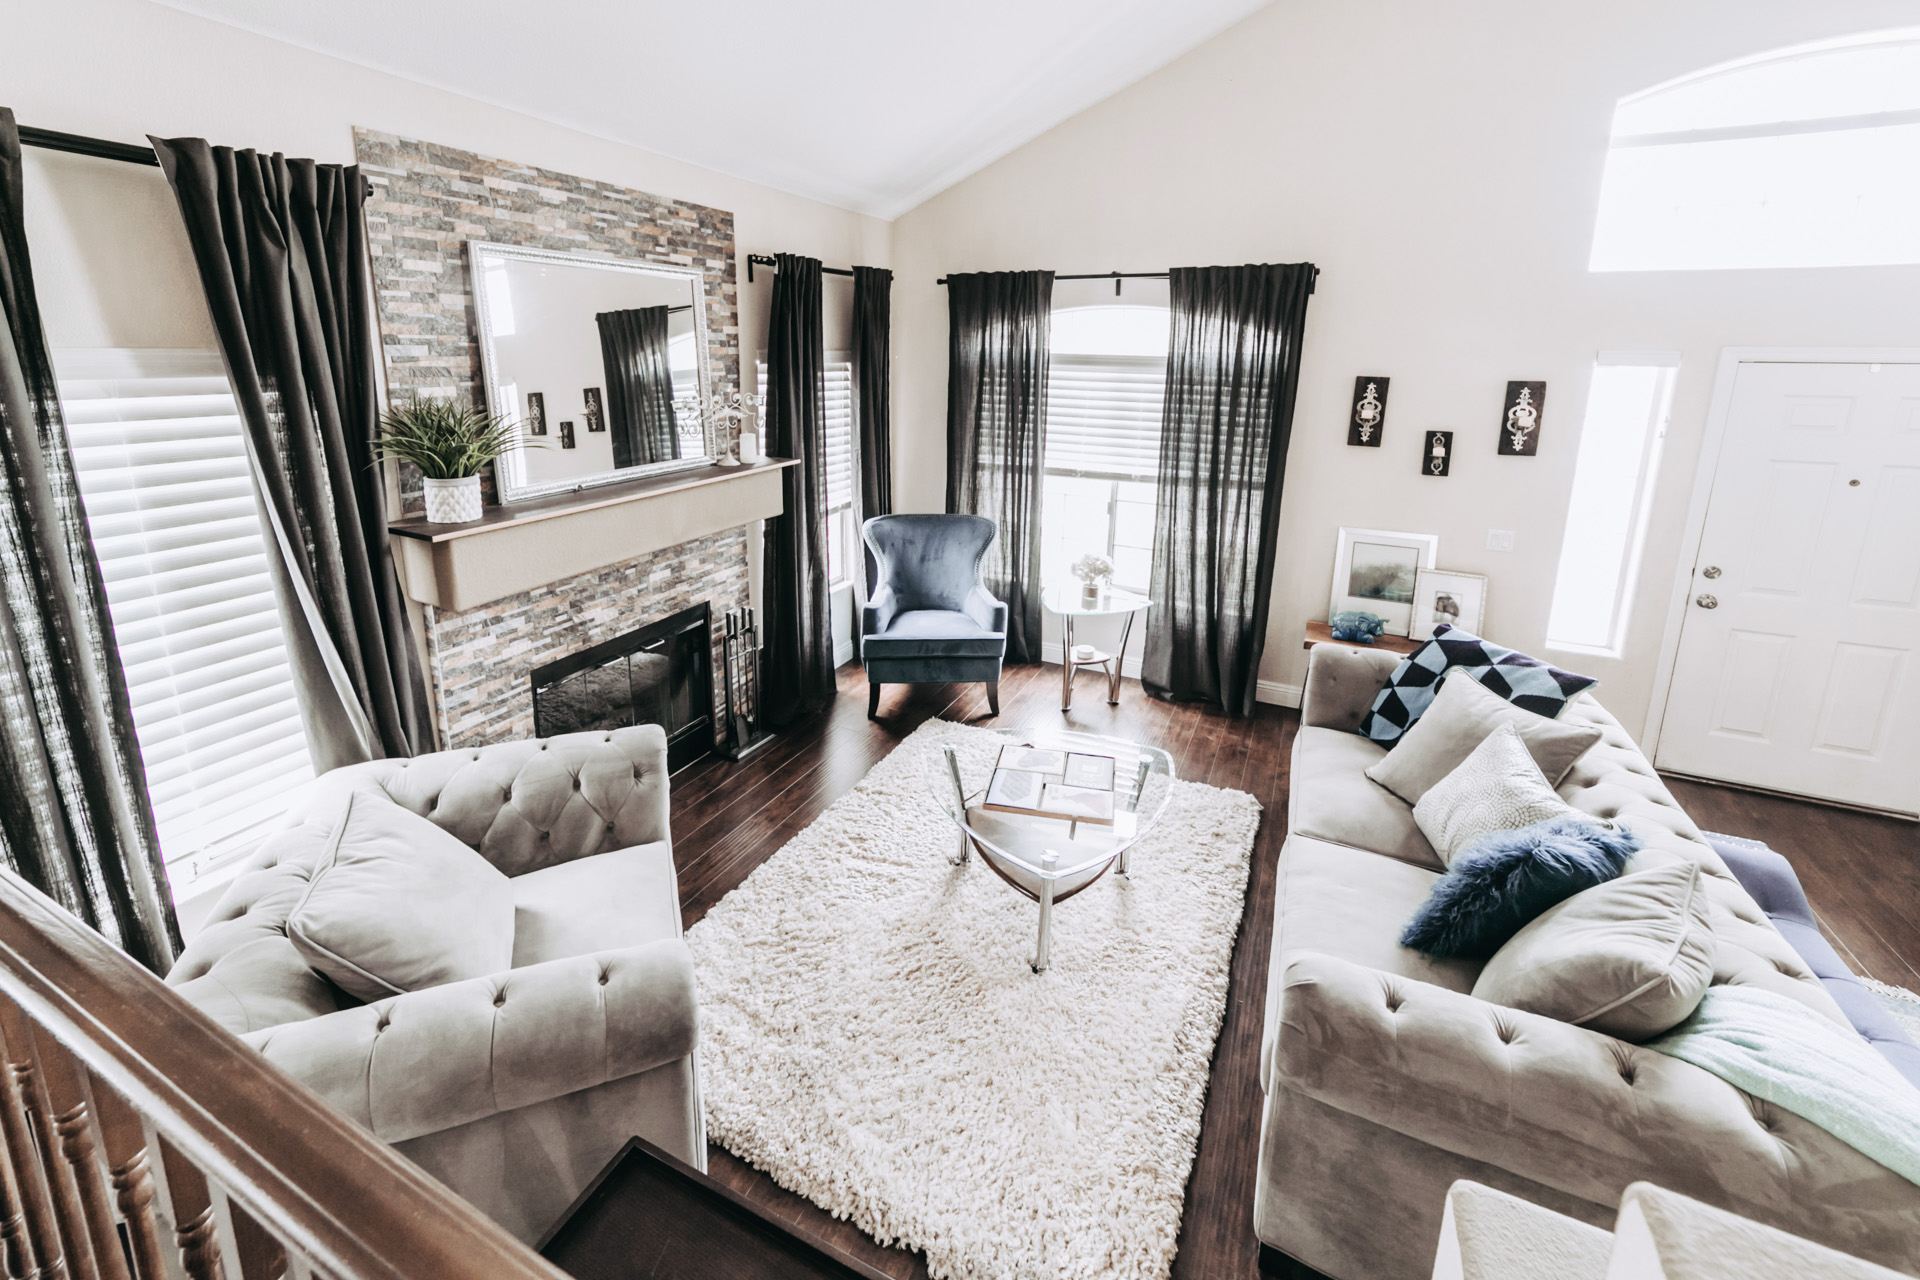 Living room pictures of residential home for sale. Real Estate Las Vegas photography pictures.